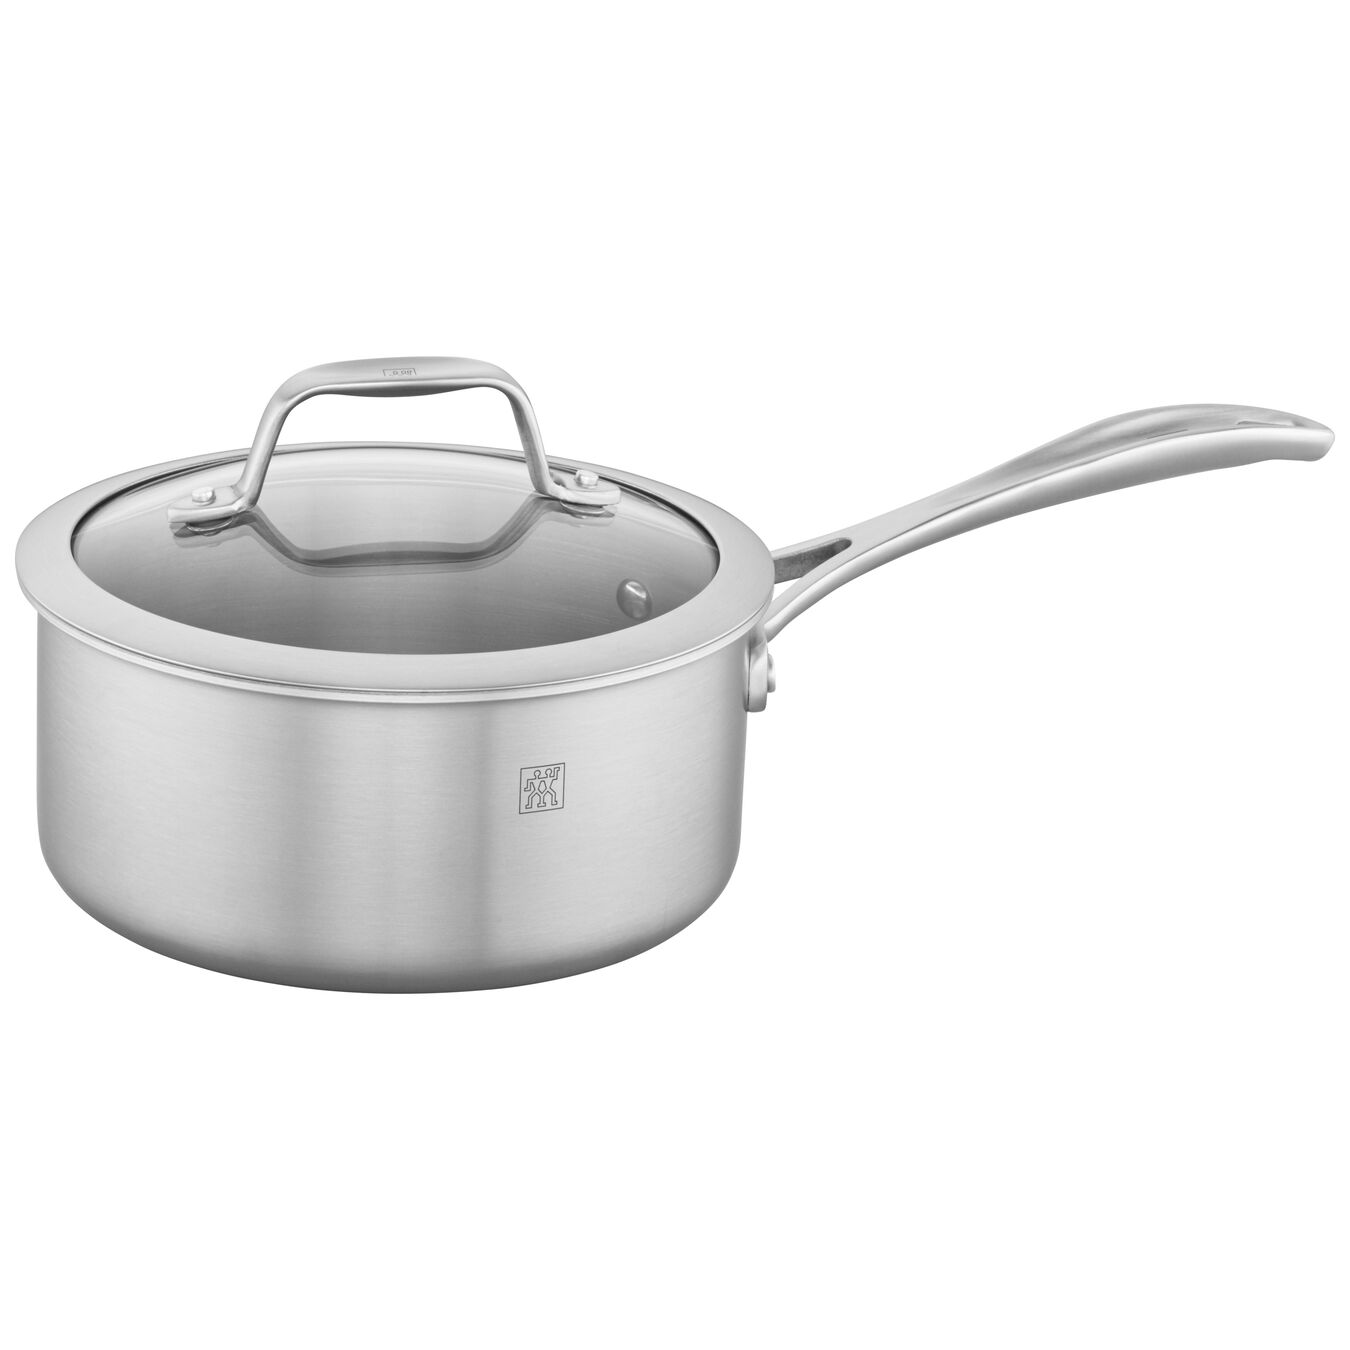 3-ply 2-qt Stainless Steel Saucepan,,large 1